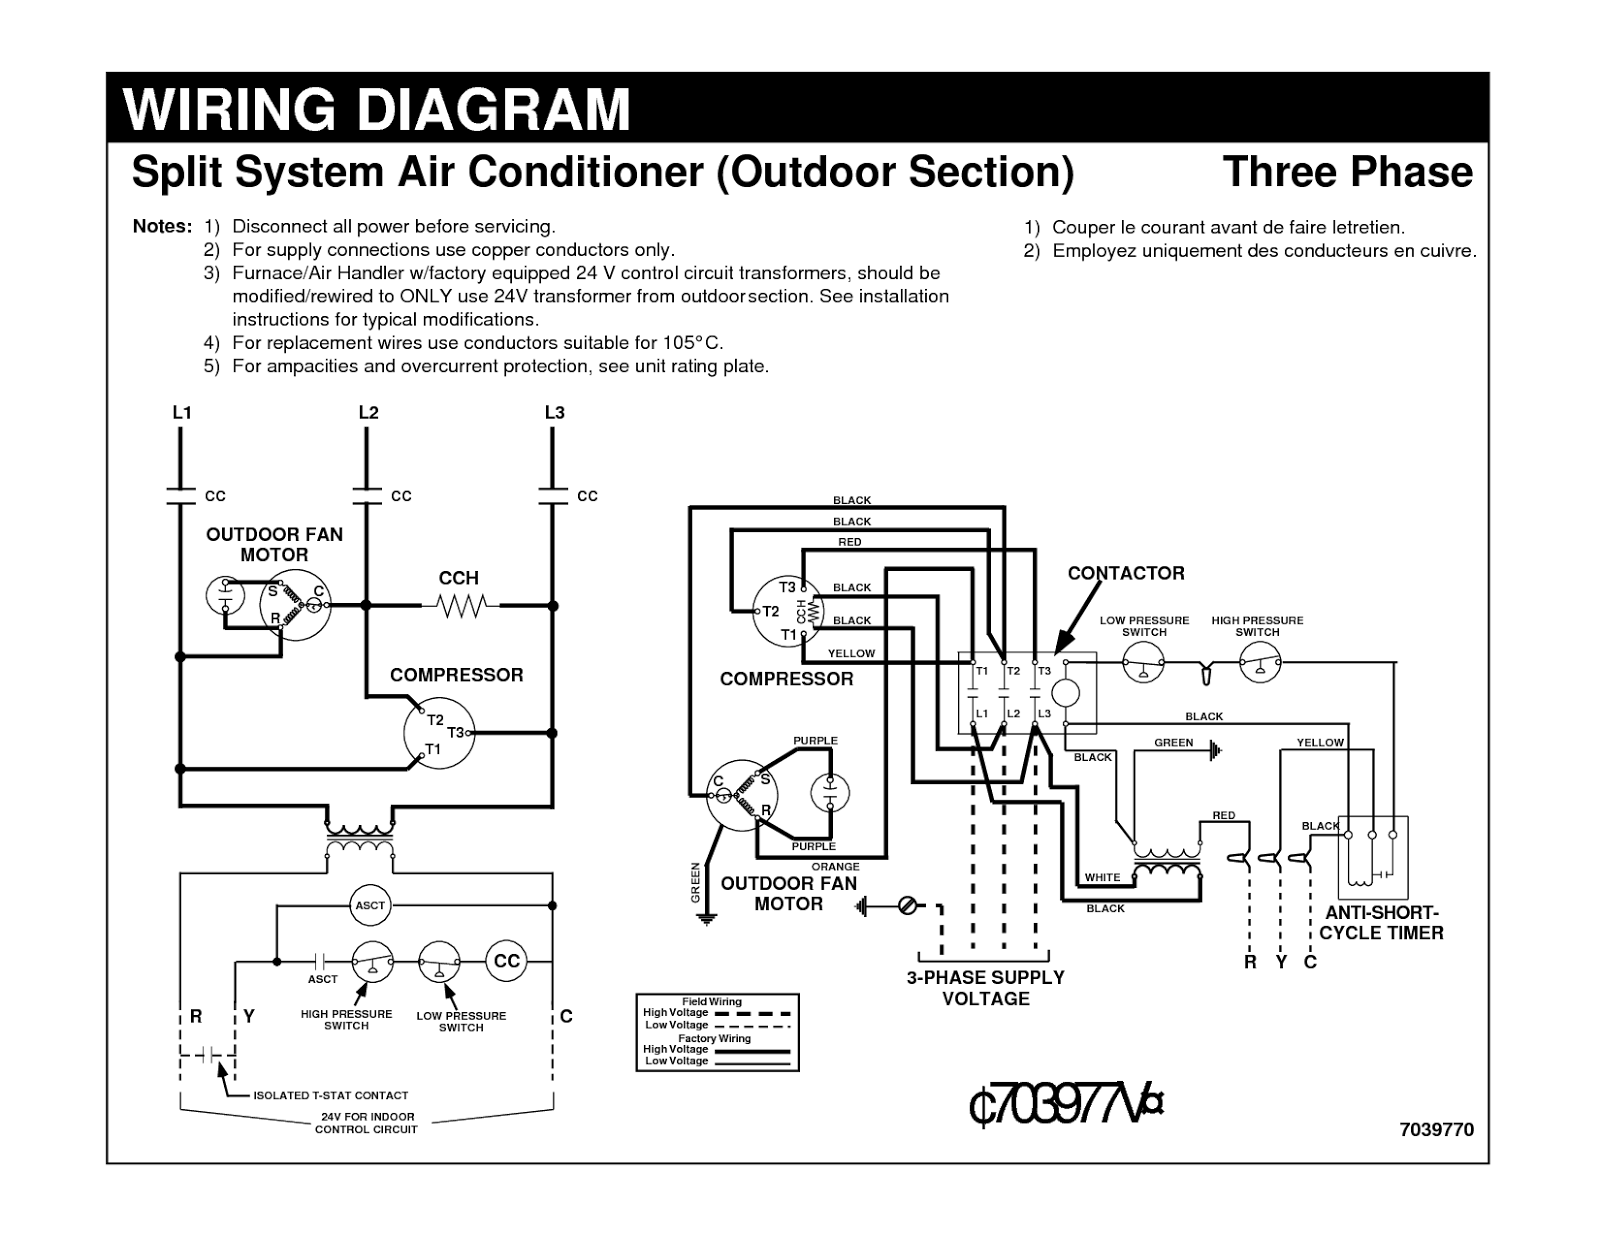 Wiring Diagram For Heating System : Electrical wiring diagrams for air conditioning systems